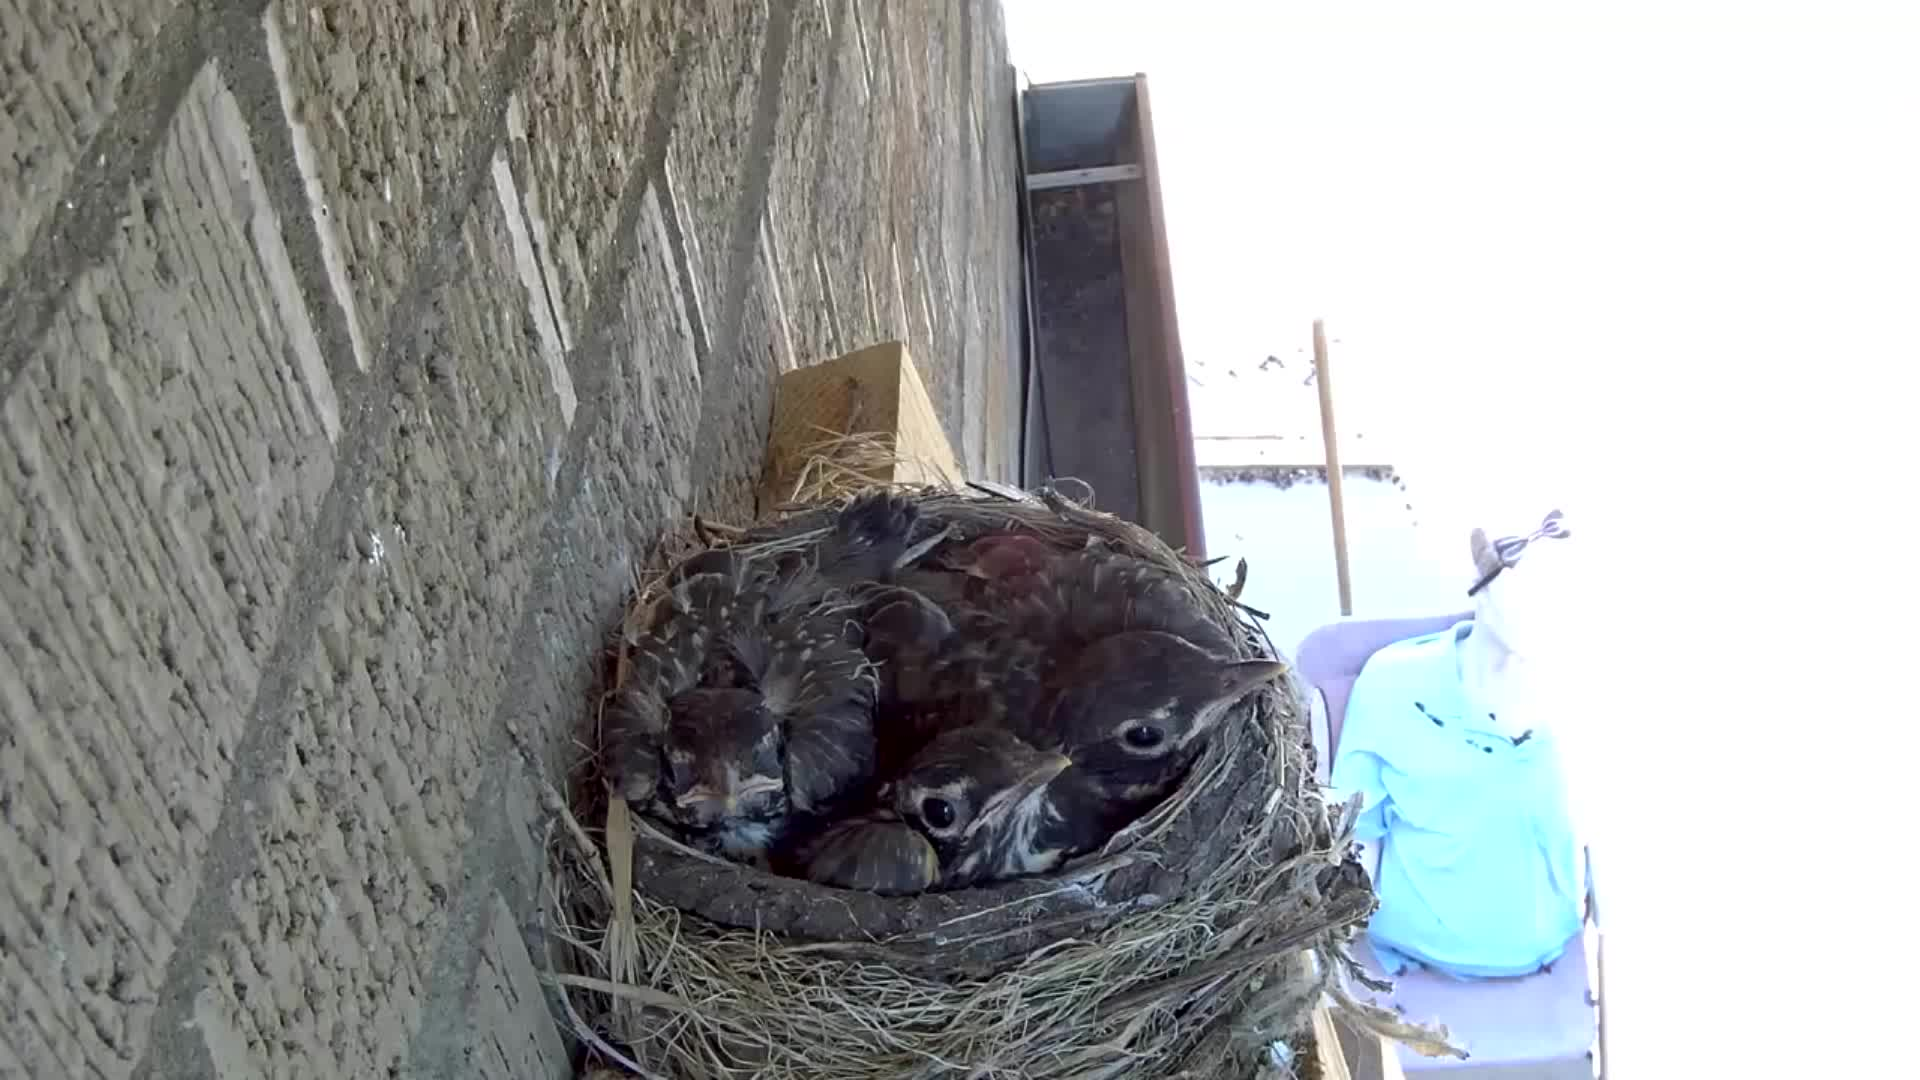 Hawk, Nest, Paul Chandler, Pets & Animals, Robin's, Hawk steals two 14 day old baby robins right out of nest GIFs